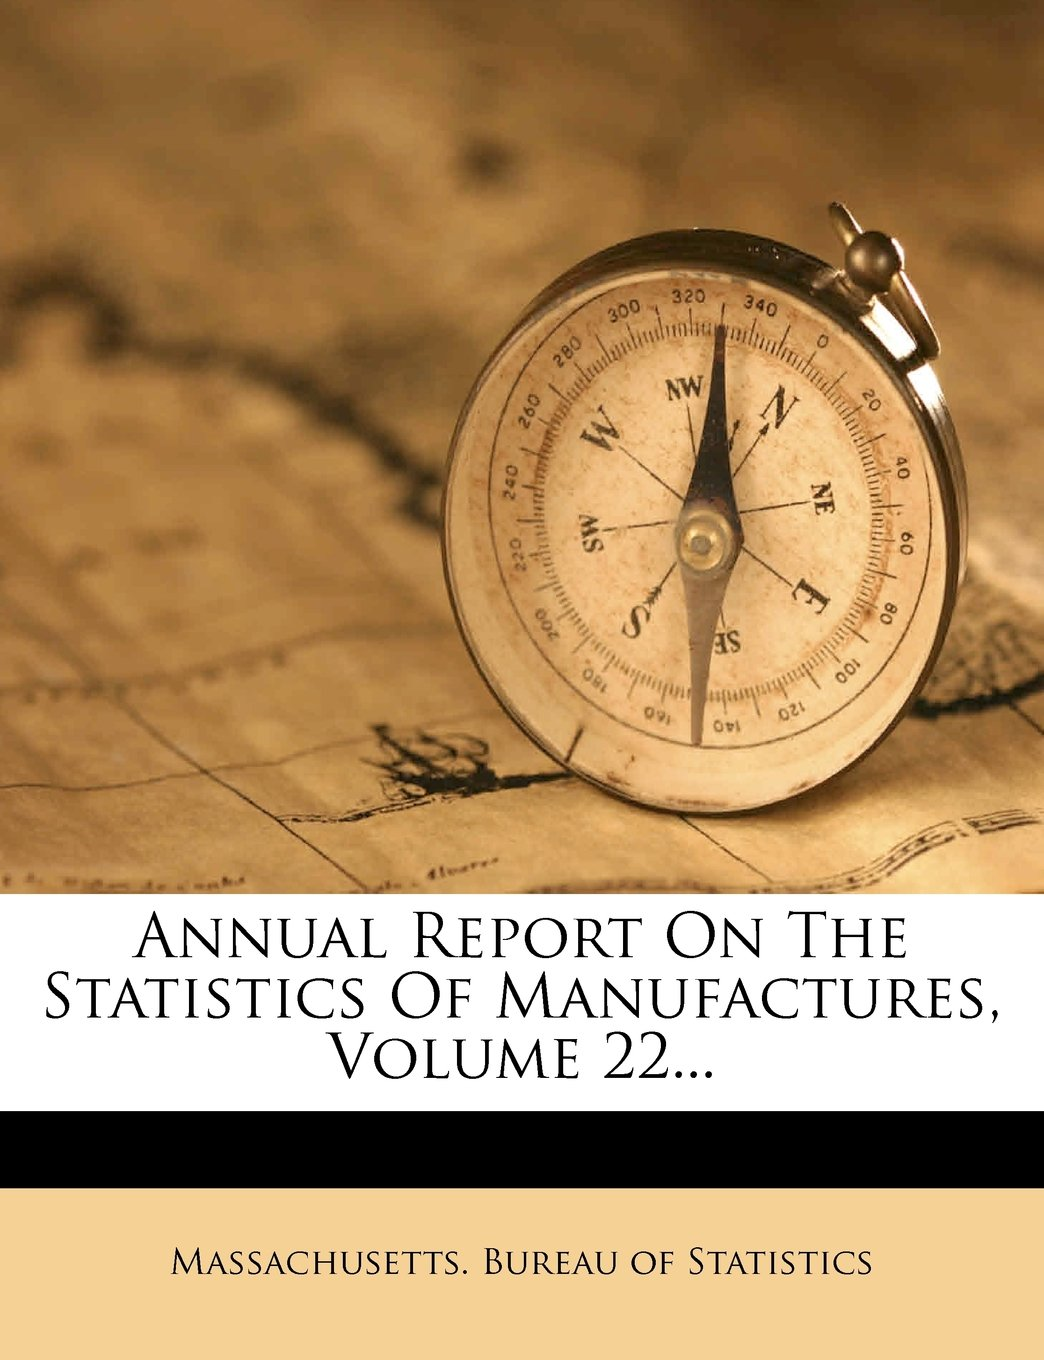 Annual Report on the Statistics of Manufactures, Volume 22... pdf